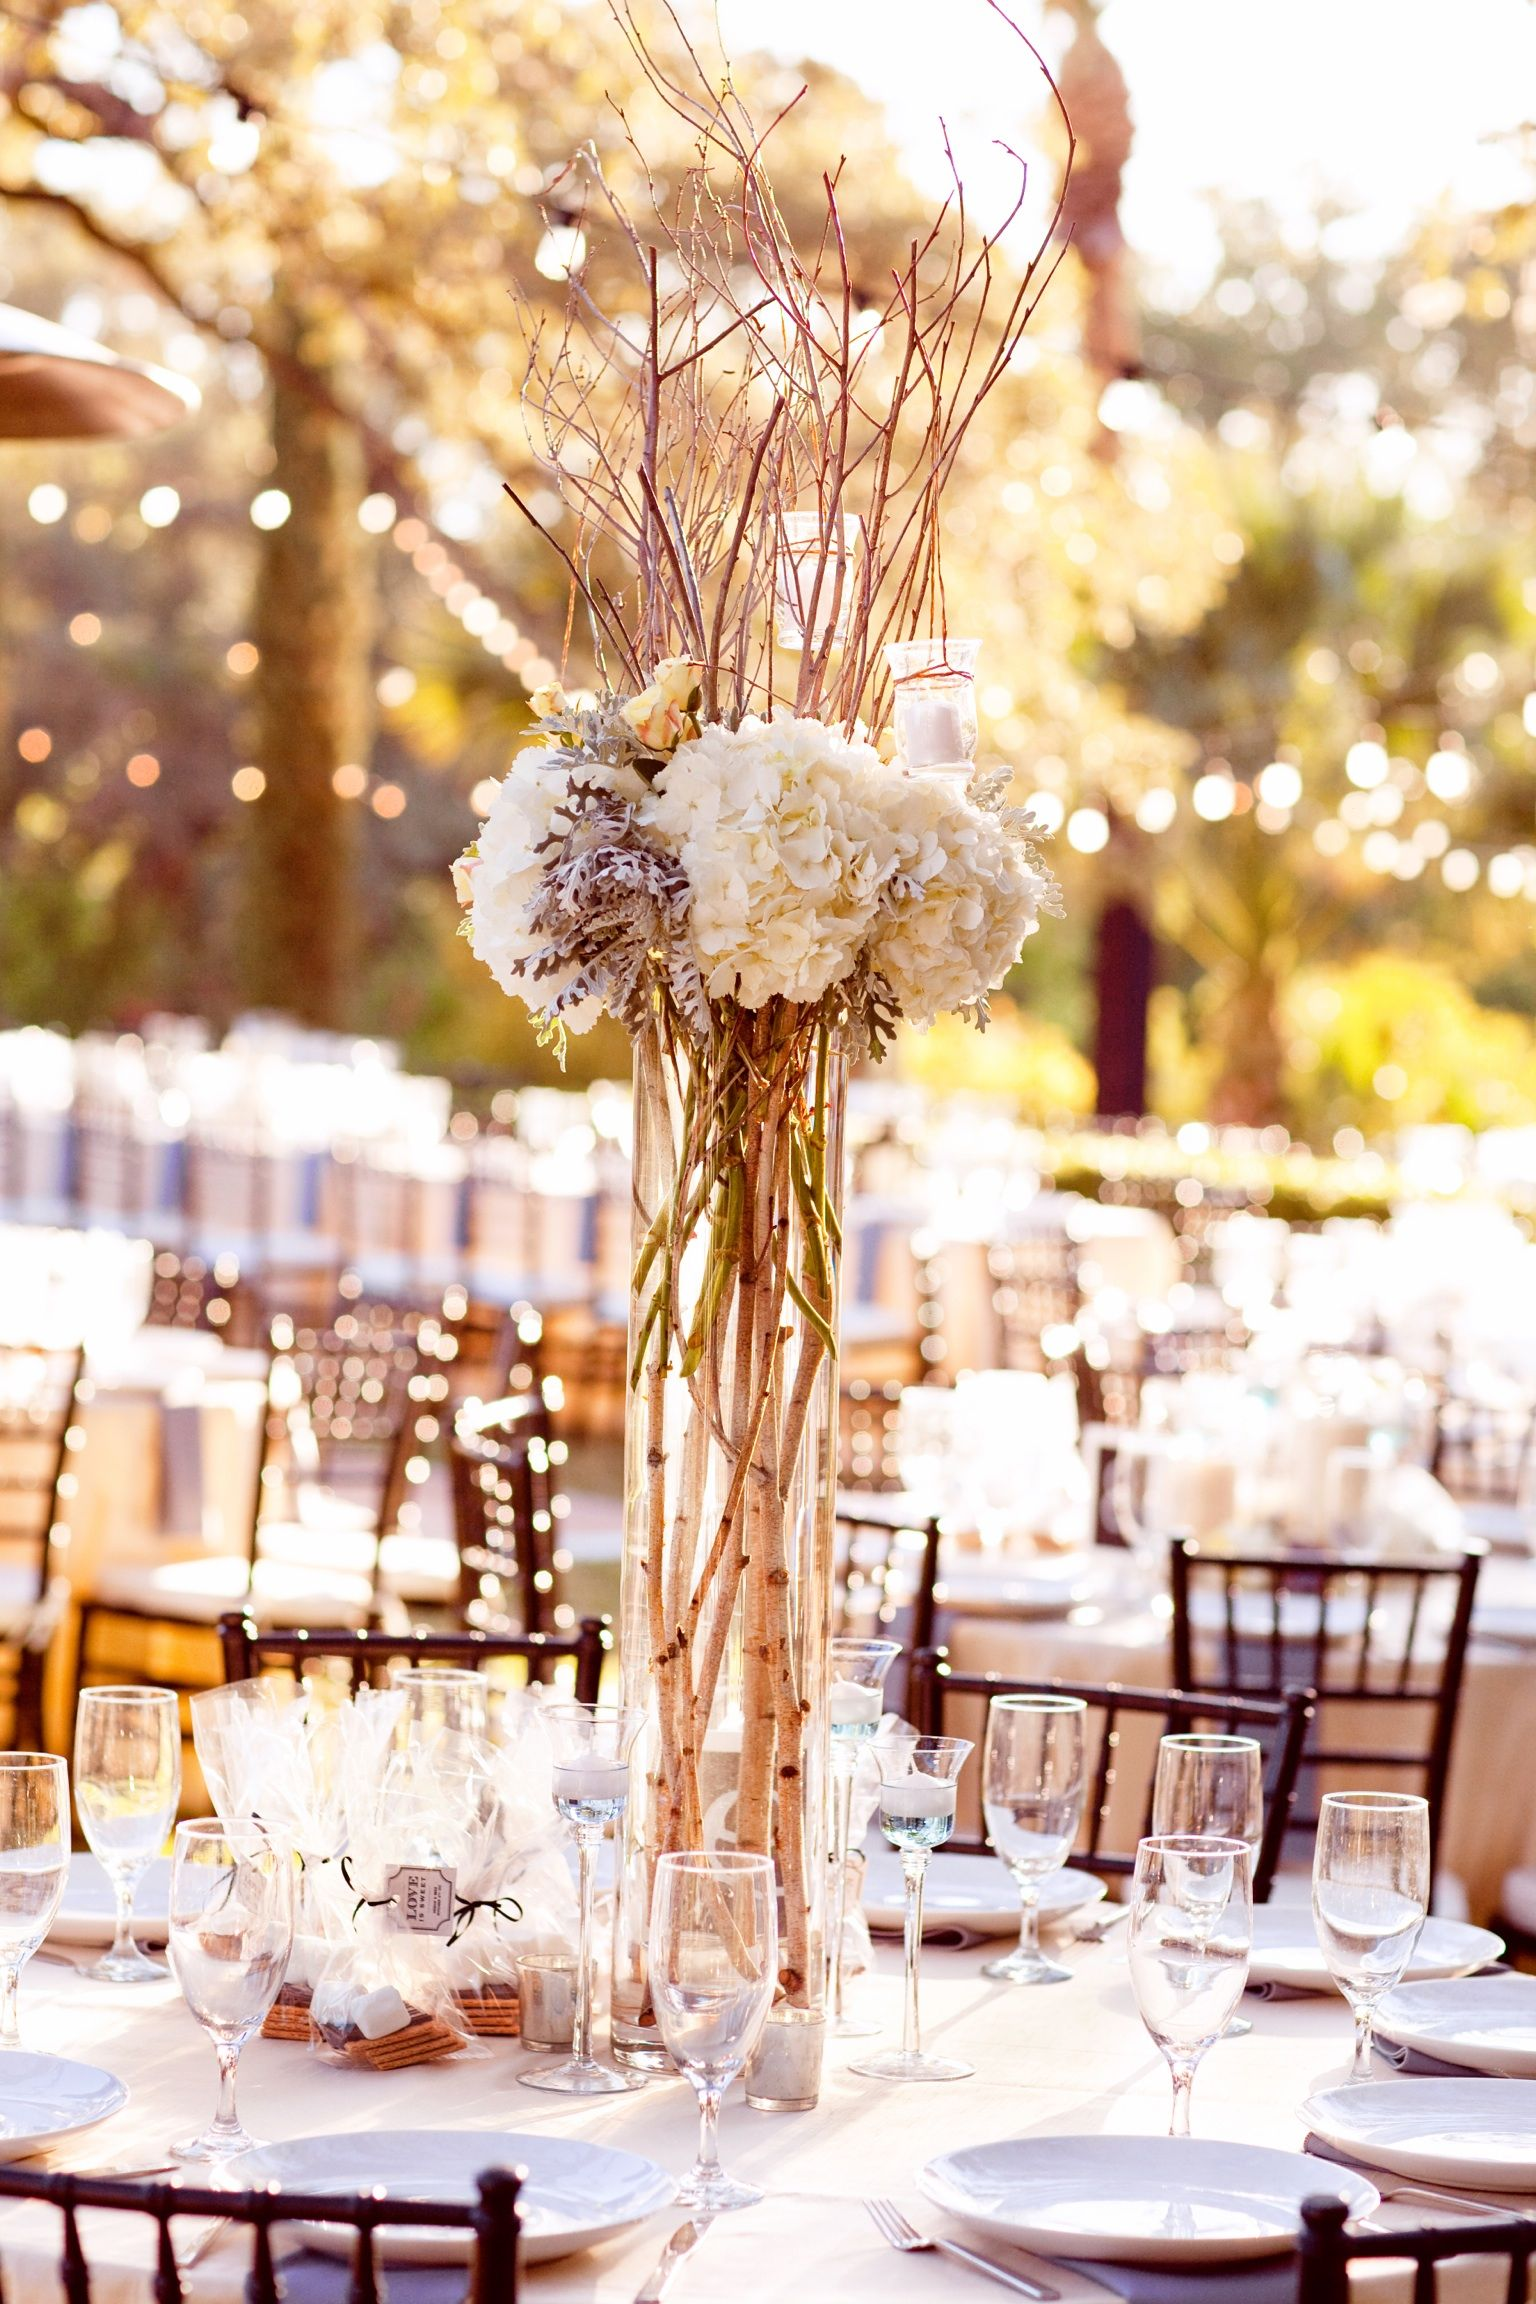 Diy to try floral arrangements pinterest birch branches dusty wedding centerpieces diy to try junglespirit Image collections